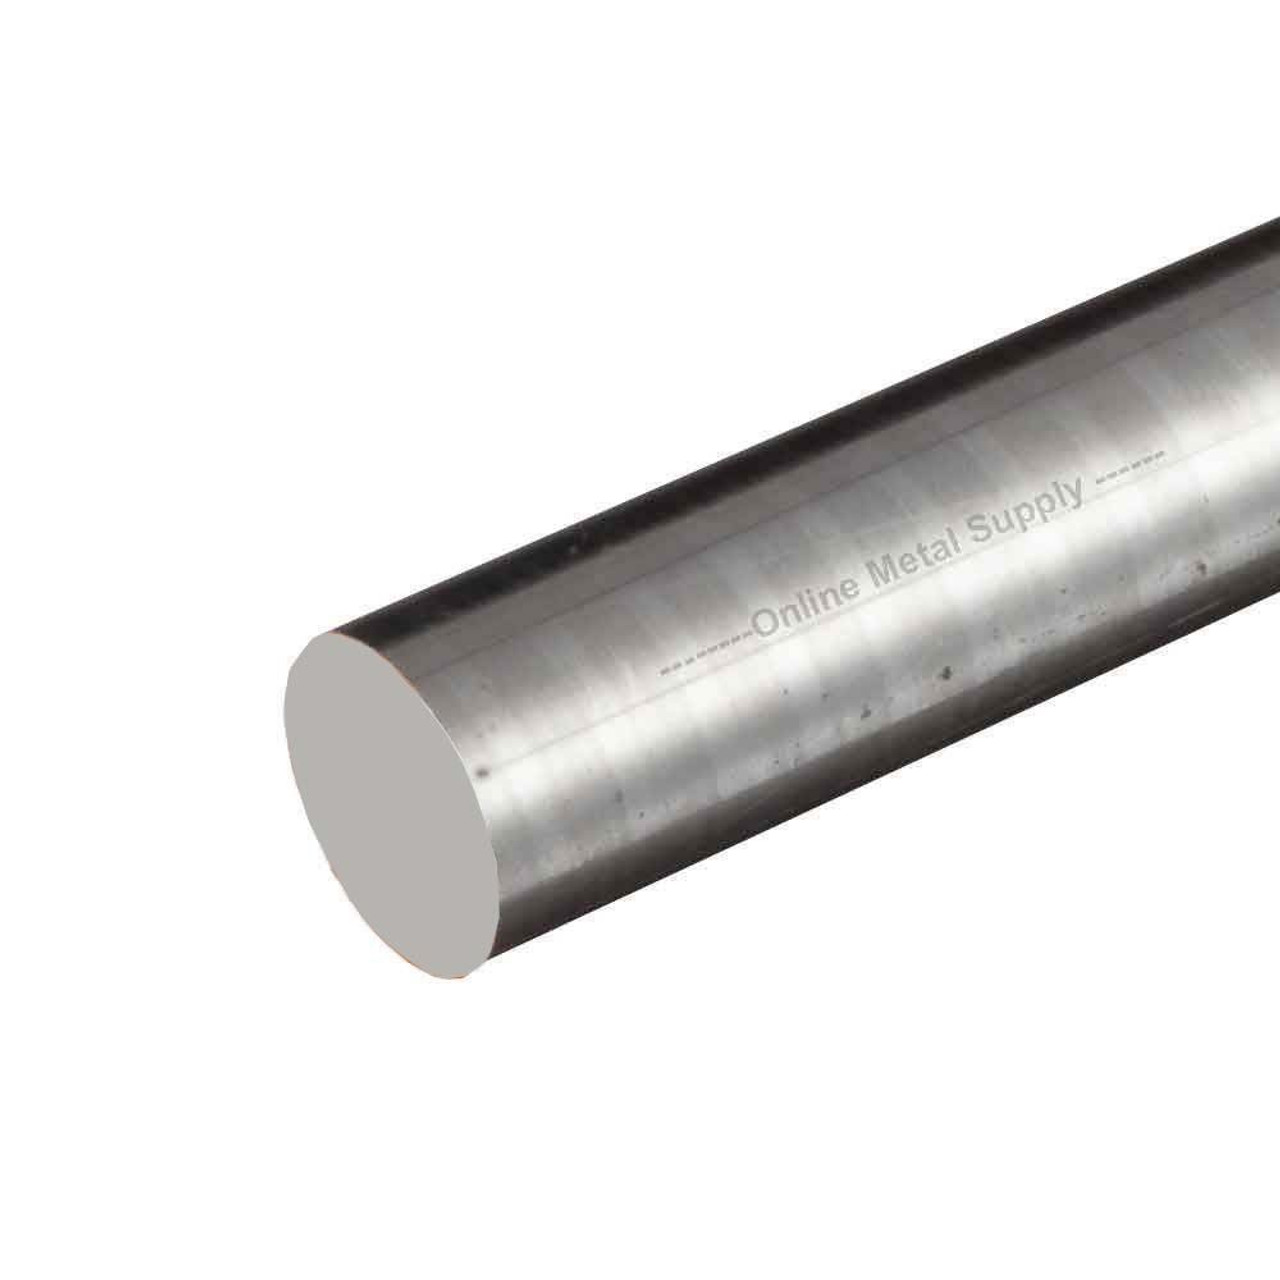 3.250 (3-1/4 inch) x 18 inches, 17-4 Cond A RT Stainless Steel Round Rod